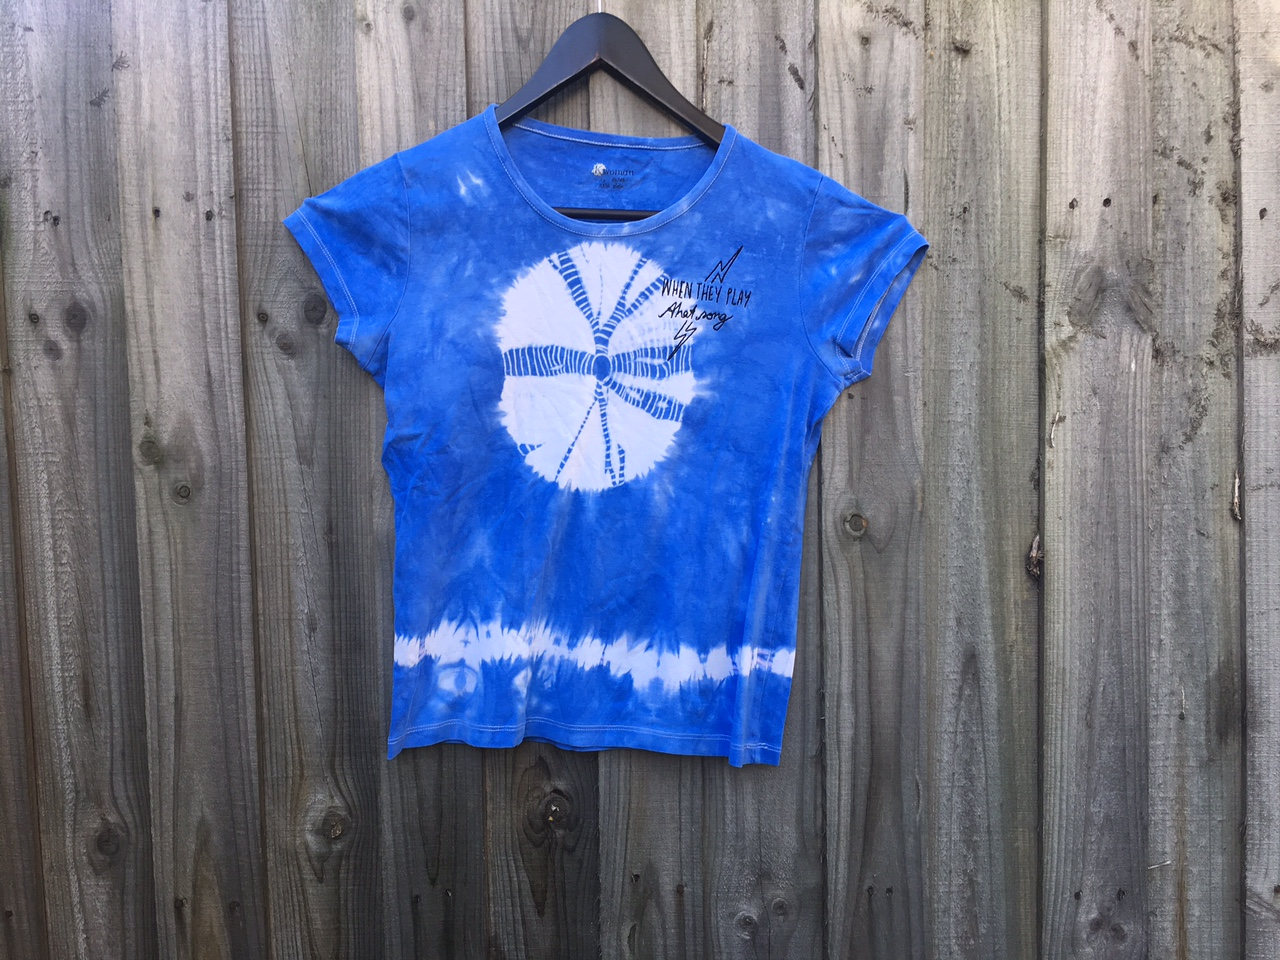 One-of-a-kind, 90's Covers EP T-shirt - blue sky burst tie-dye ! XS womens. - Lisa Mitchell